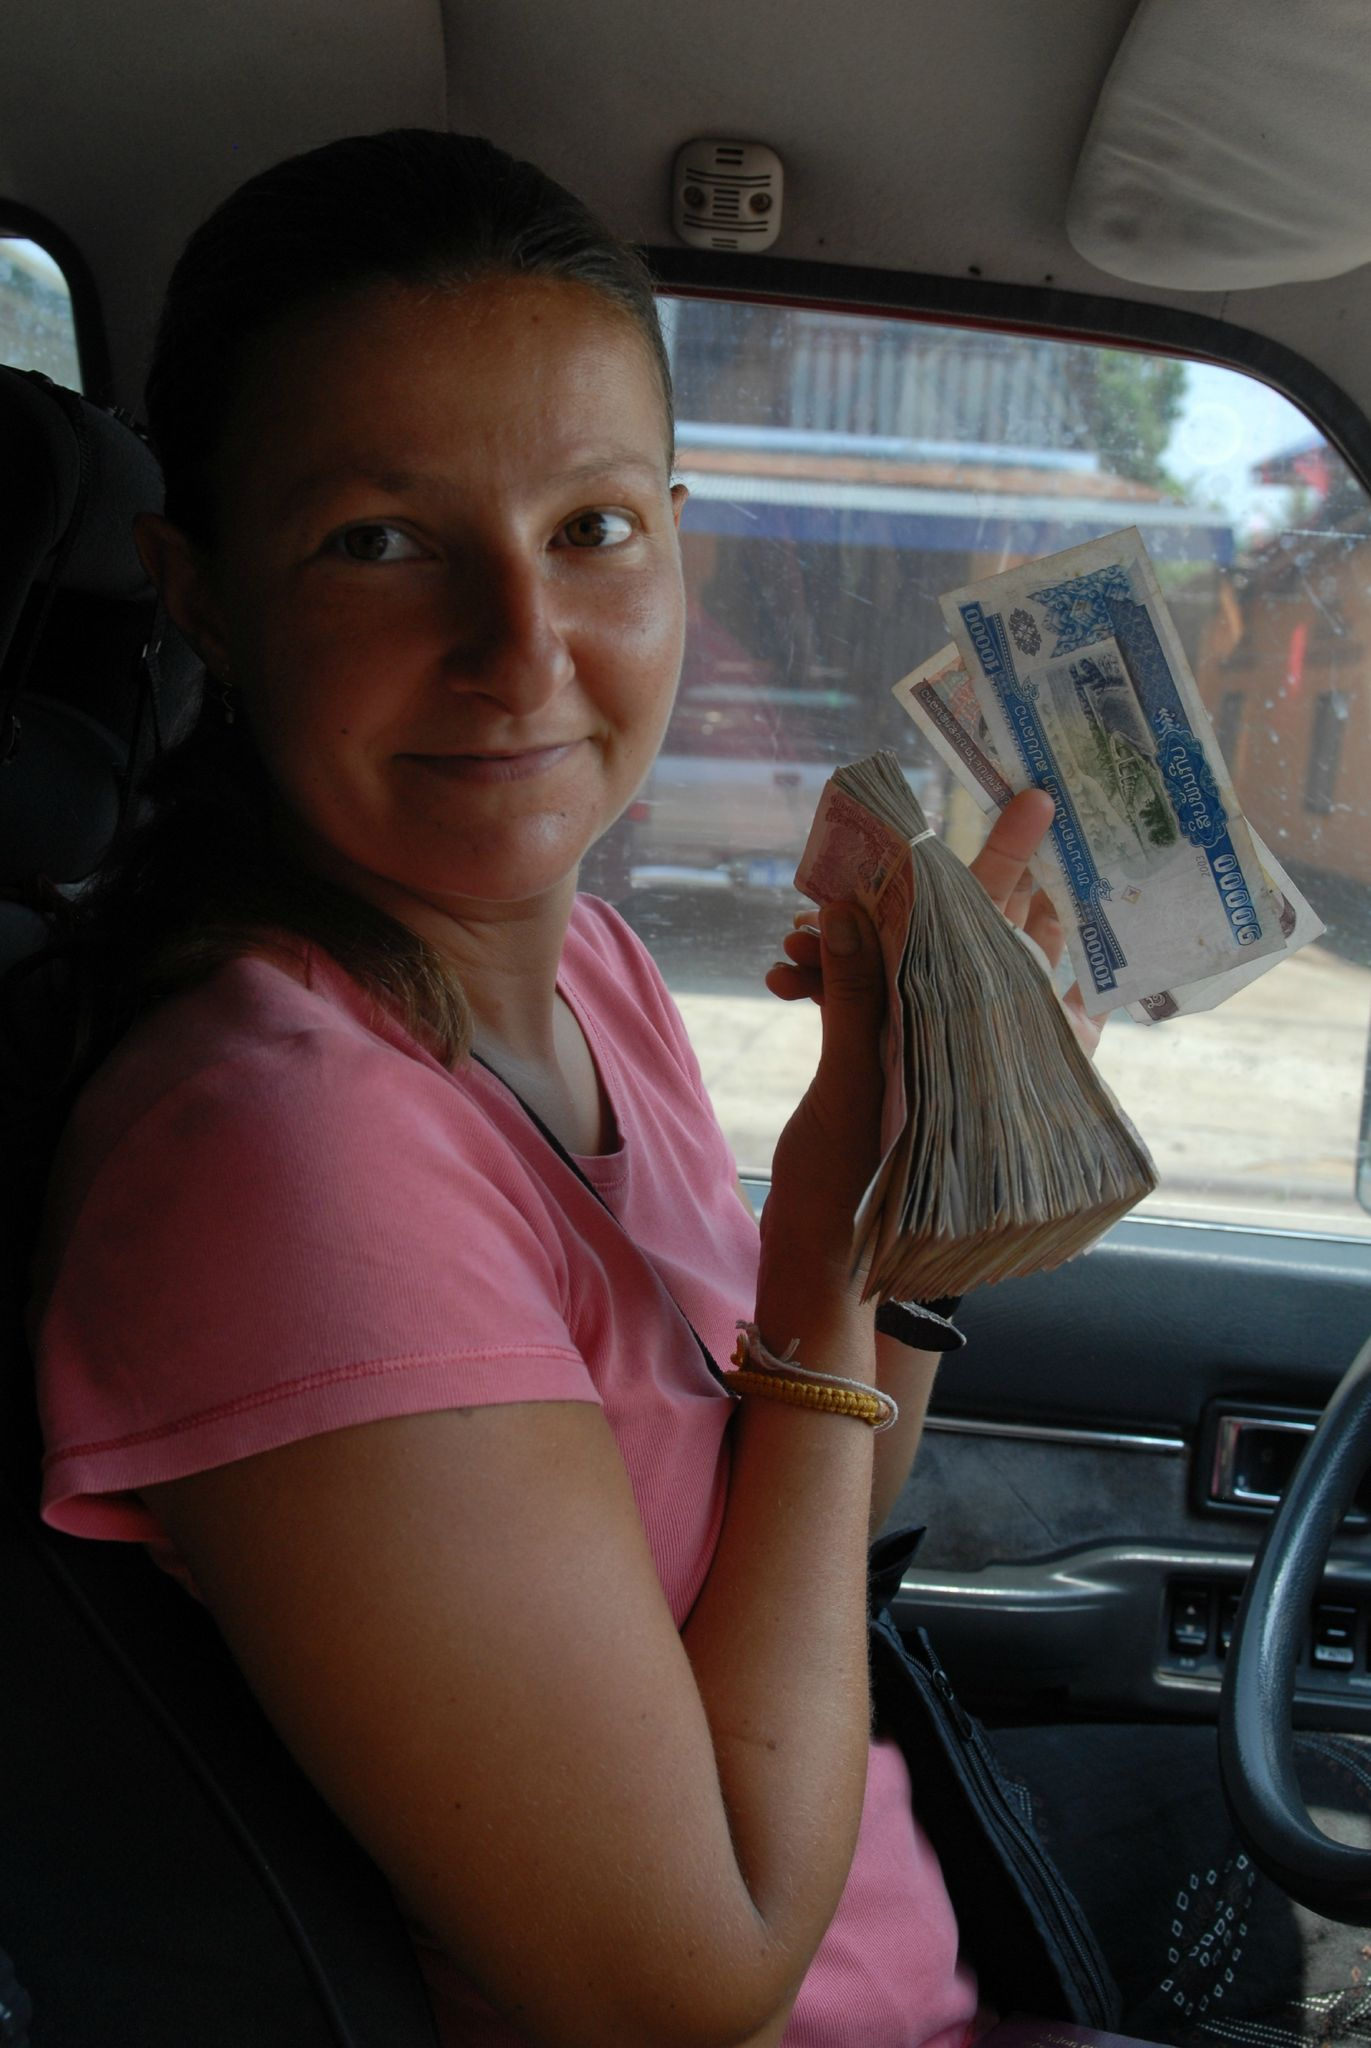 le kip, money du laos (1€ = 10 000 kips )